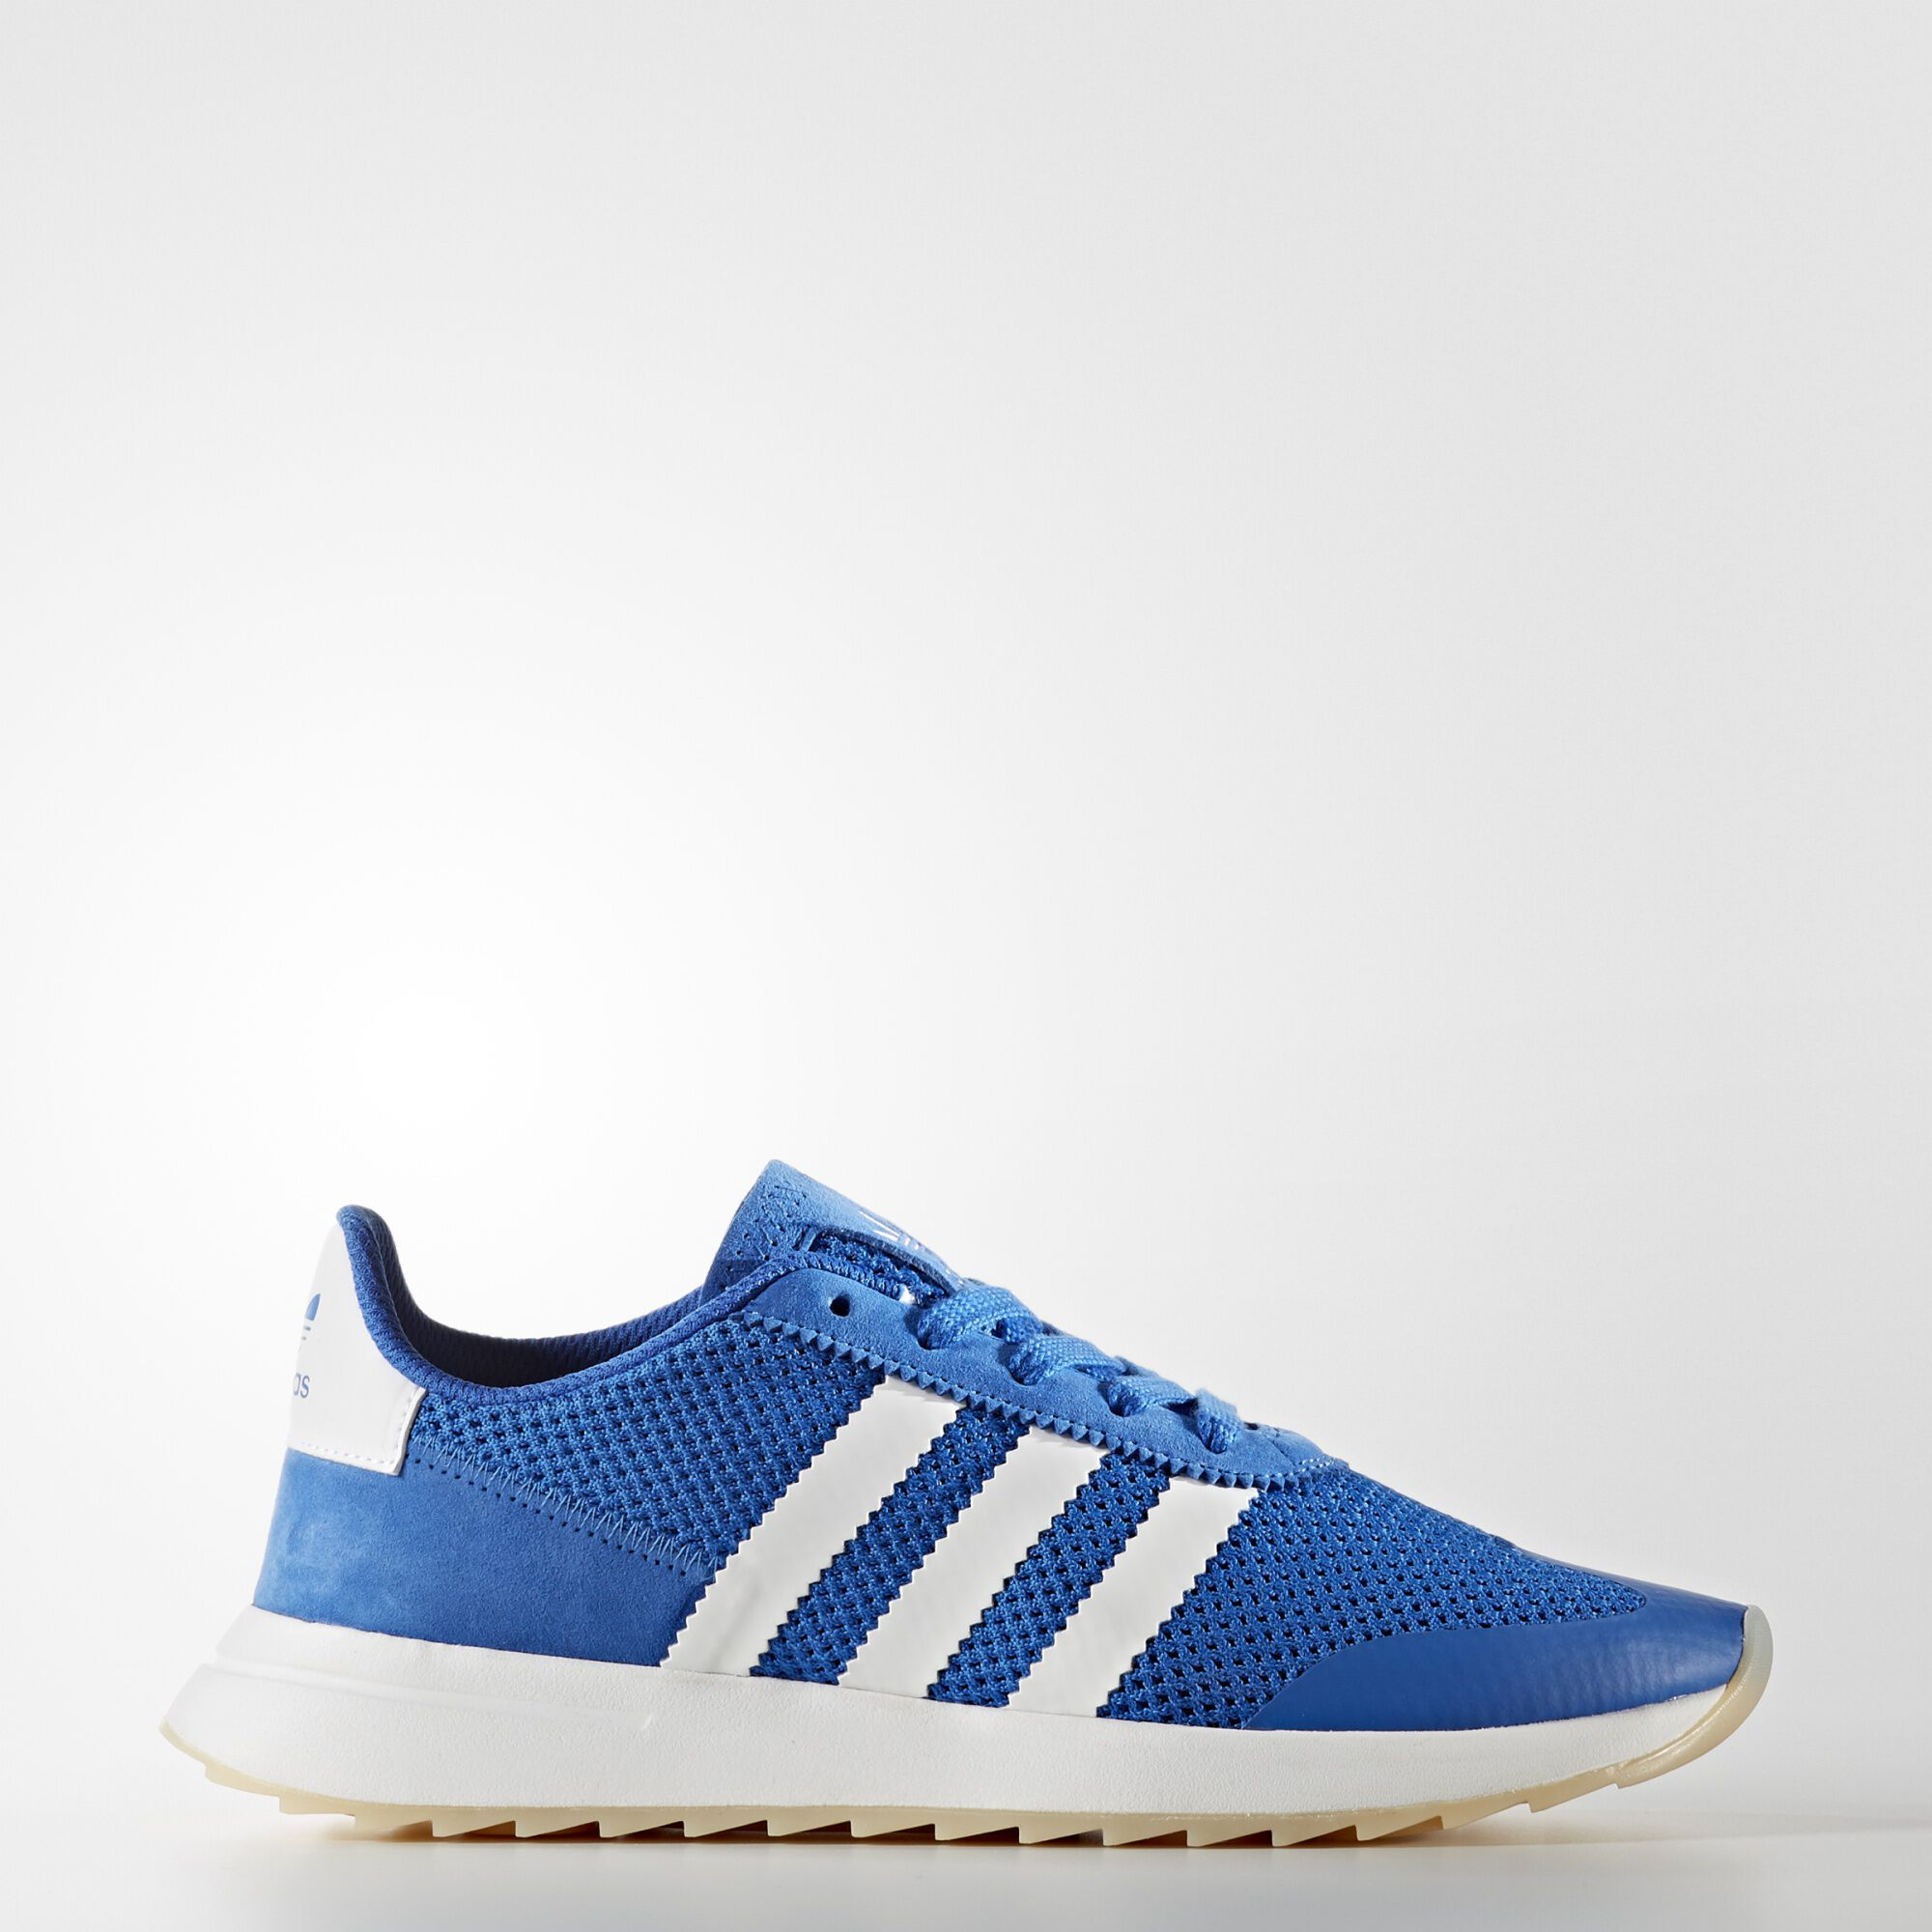 Model Women VS Jog BlueOrangeNavy By Adidas Neo Shoes Factory Price